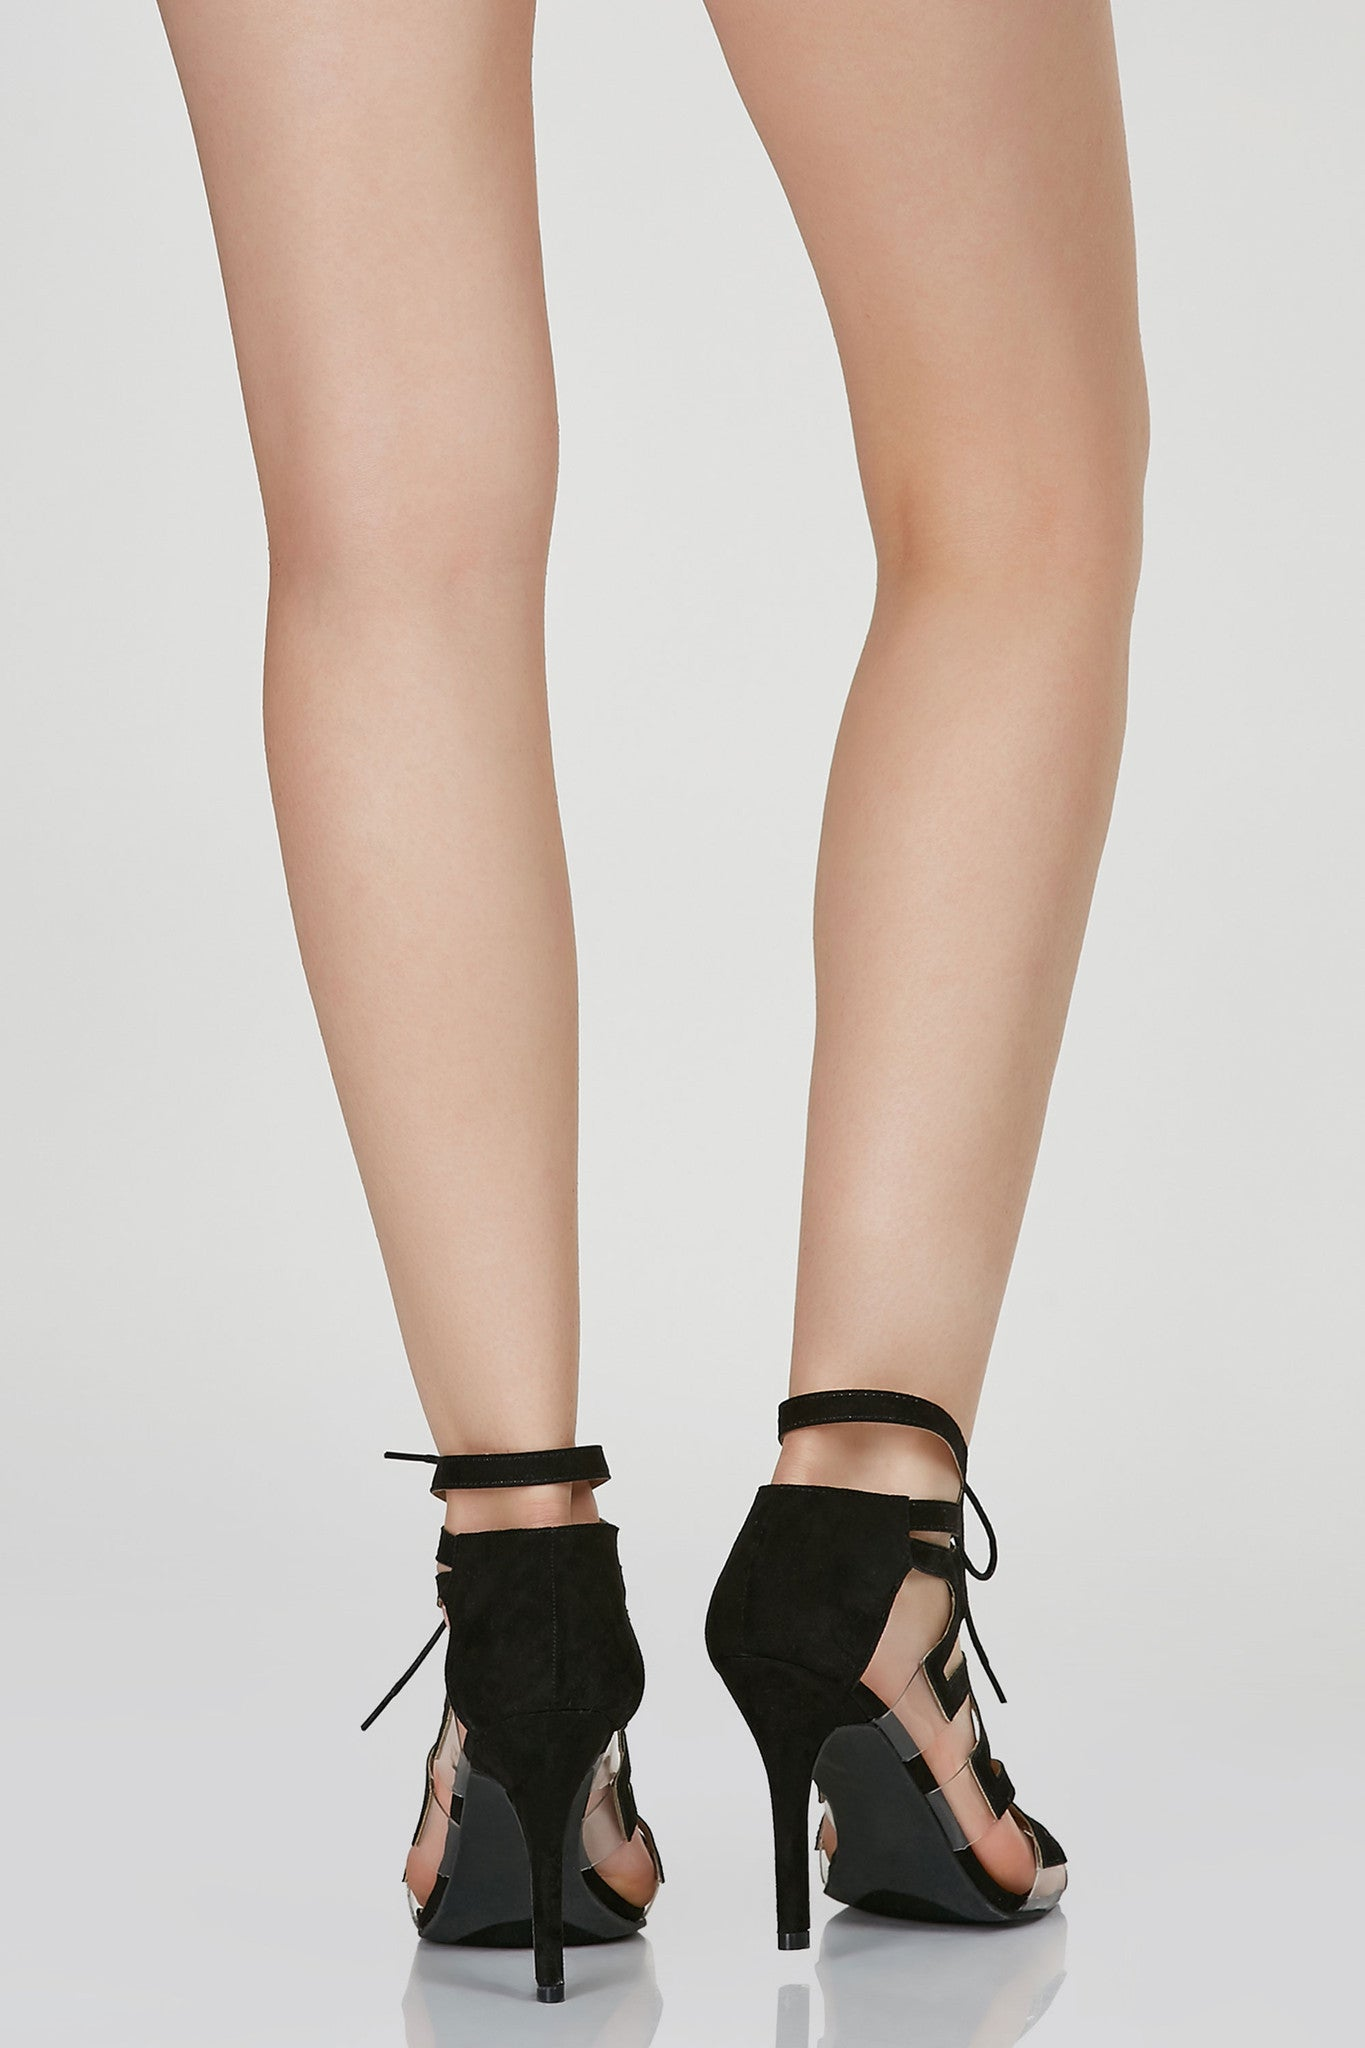 Cut out caged pumps with chic lace up closure. Clear panels at sides with peep toe and suede finish.